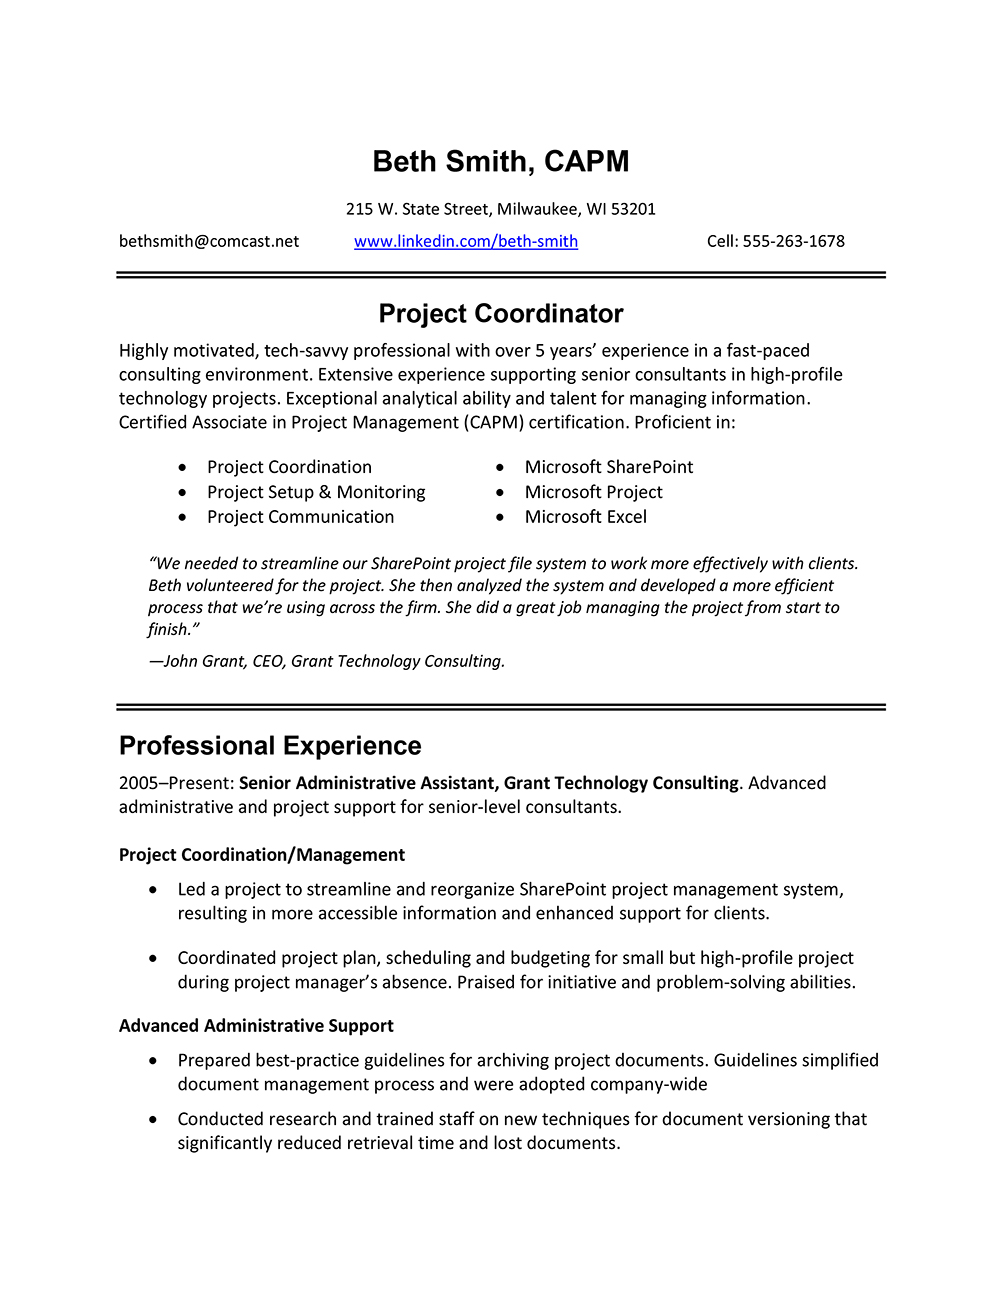 us resumes sample resume word document - Sample Resume Word Document